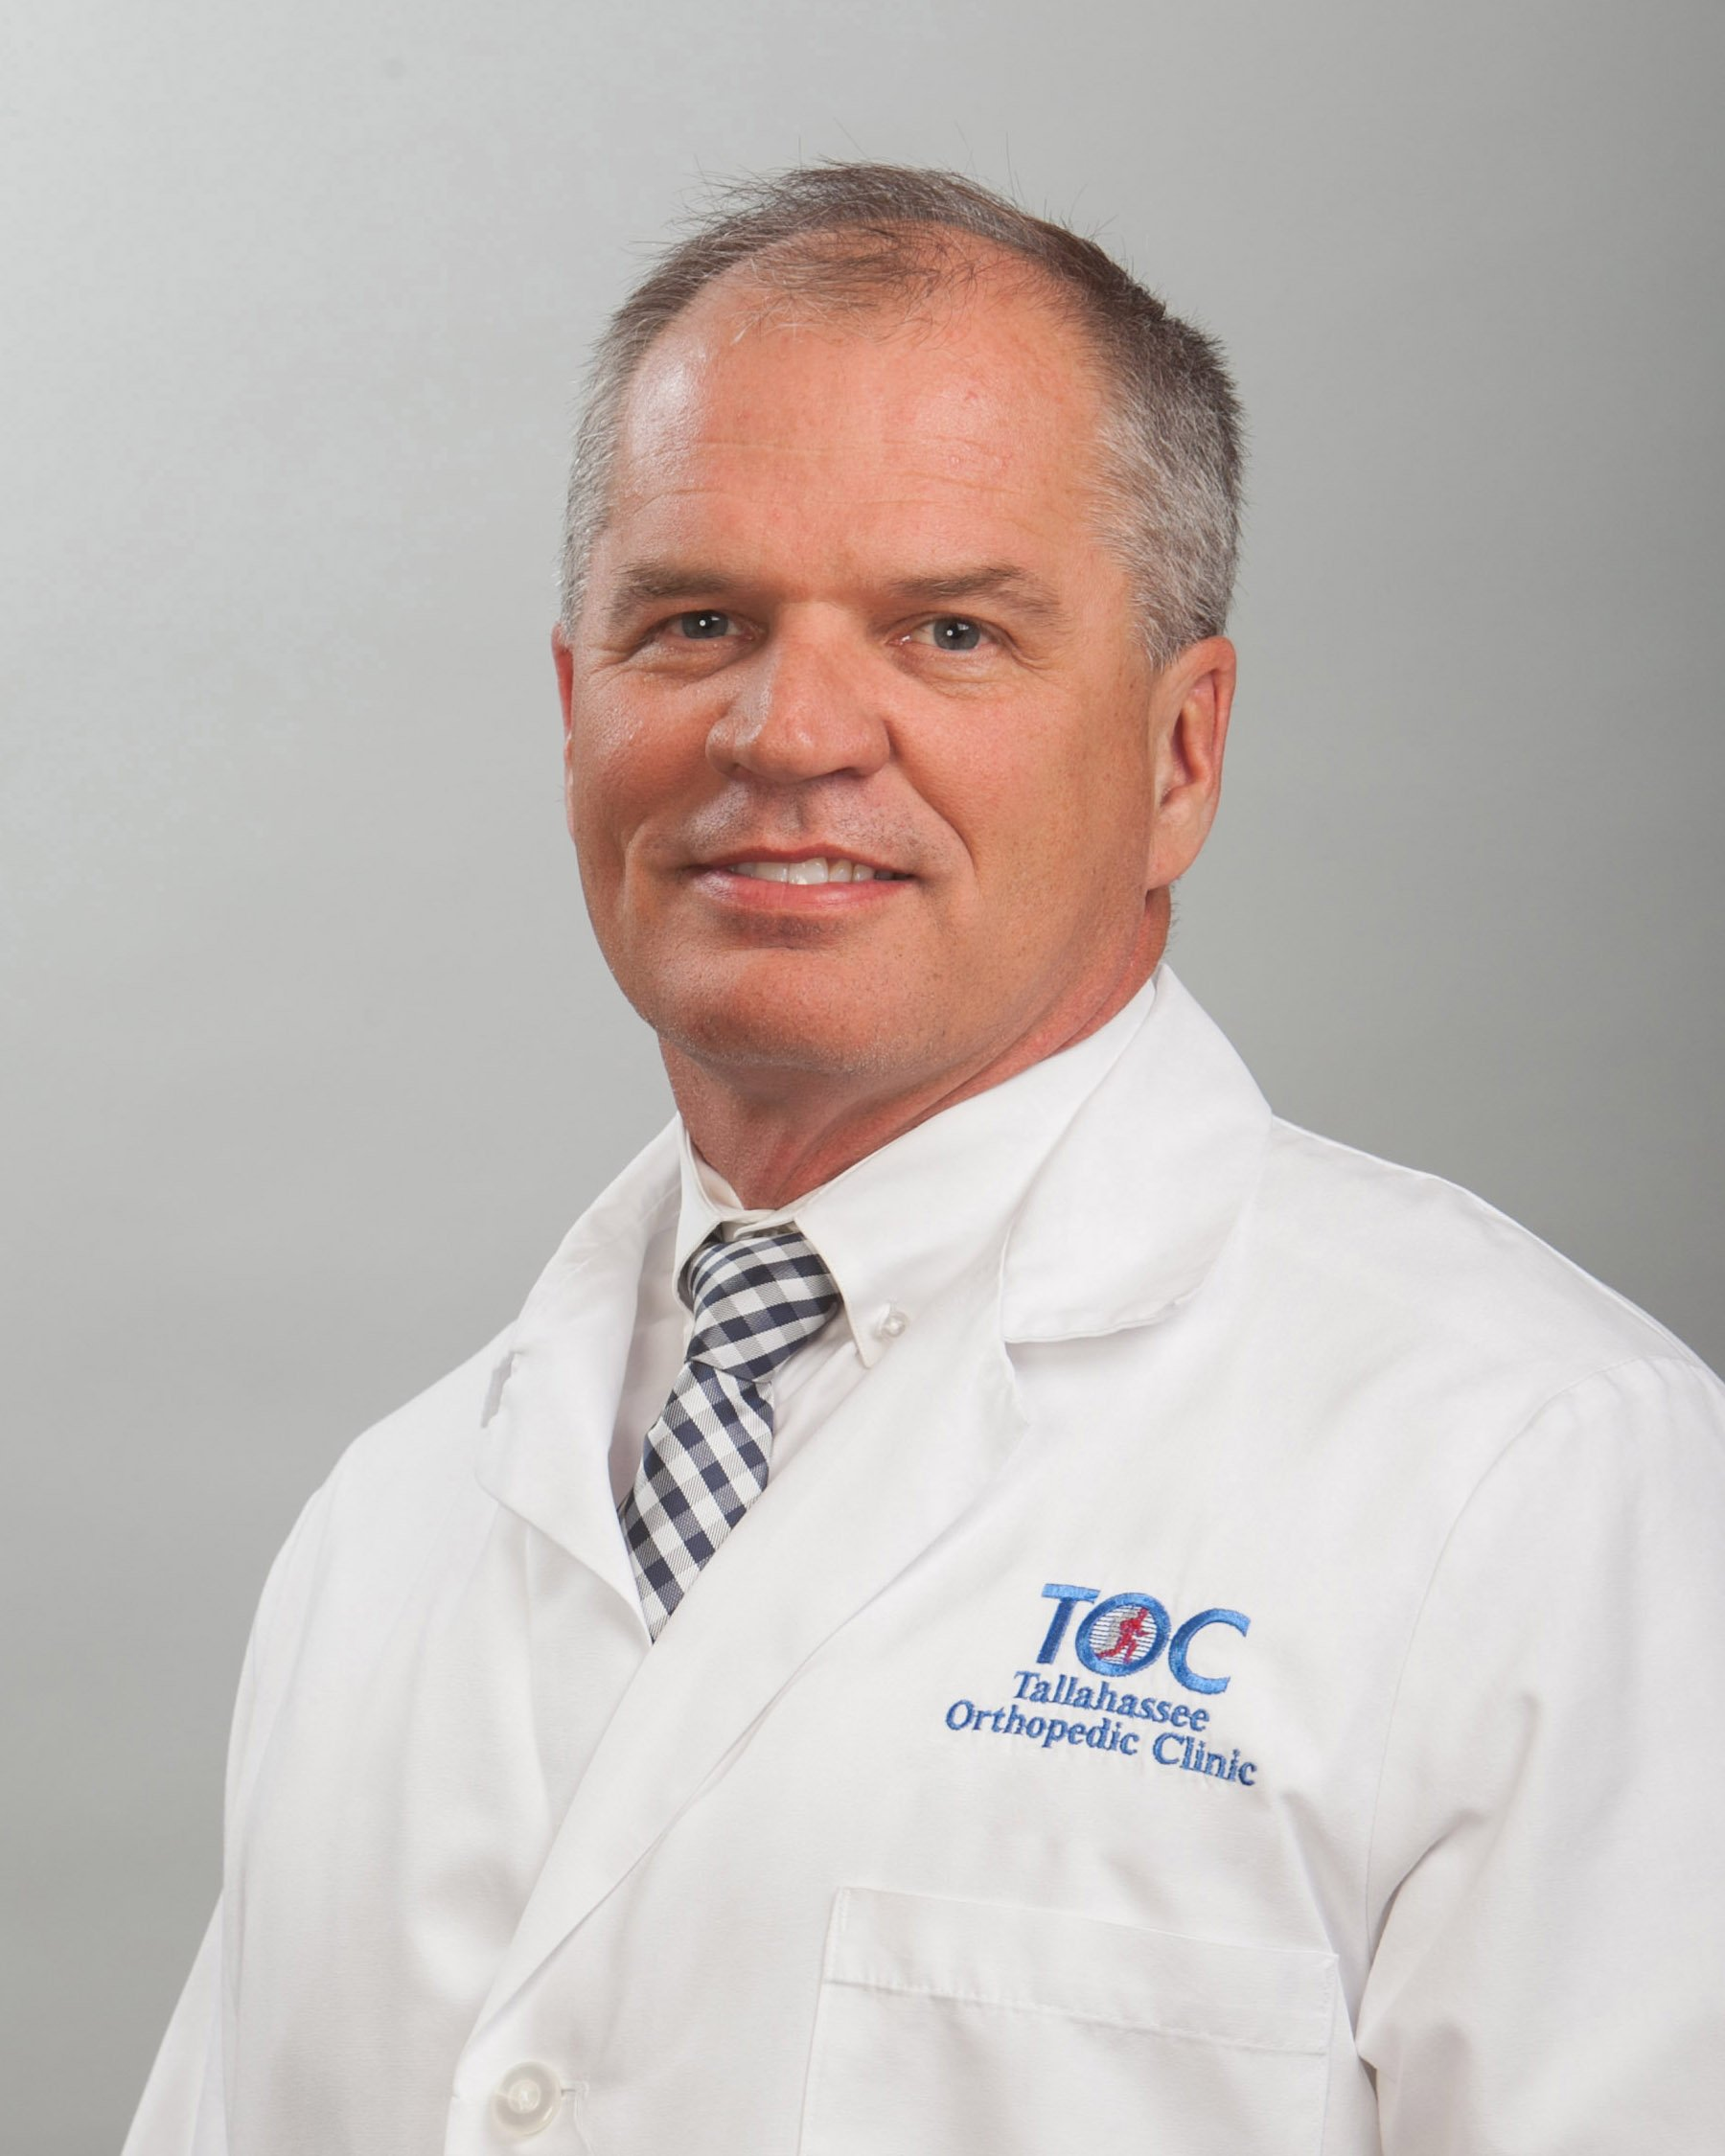 Kris D. Stowers, MD